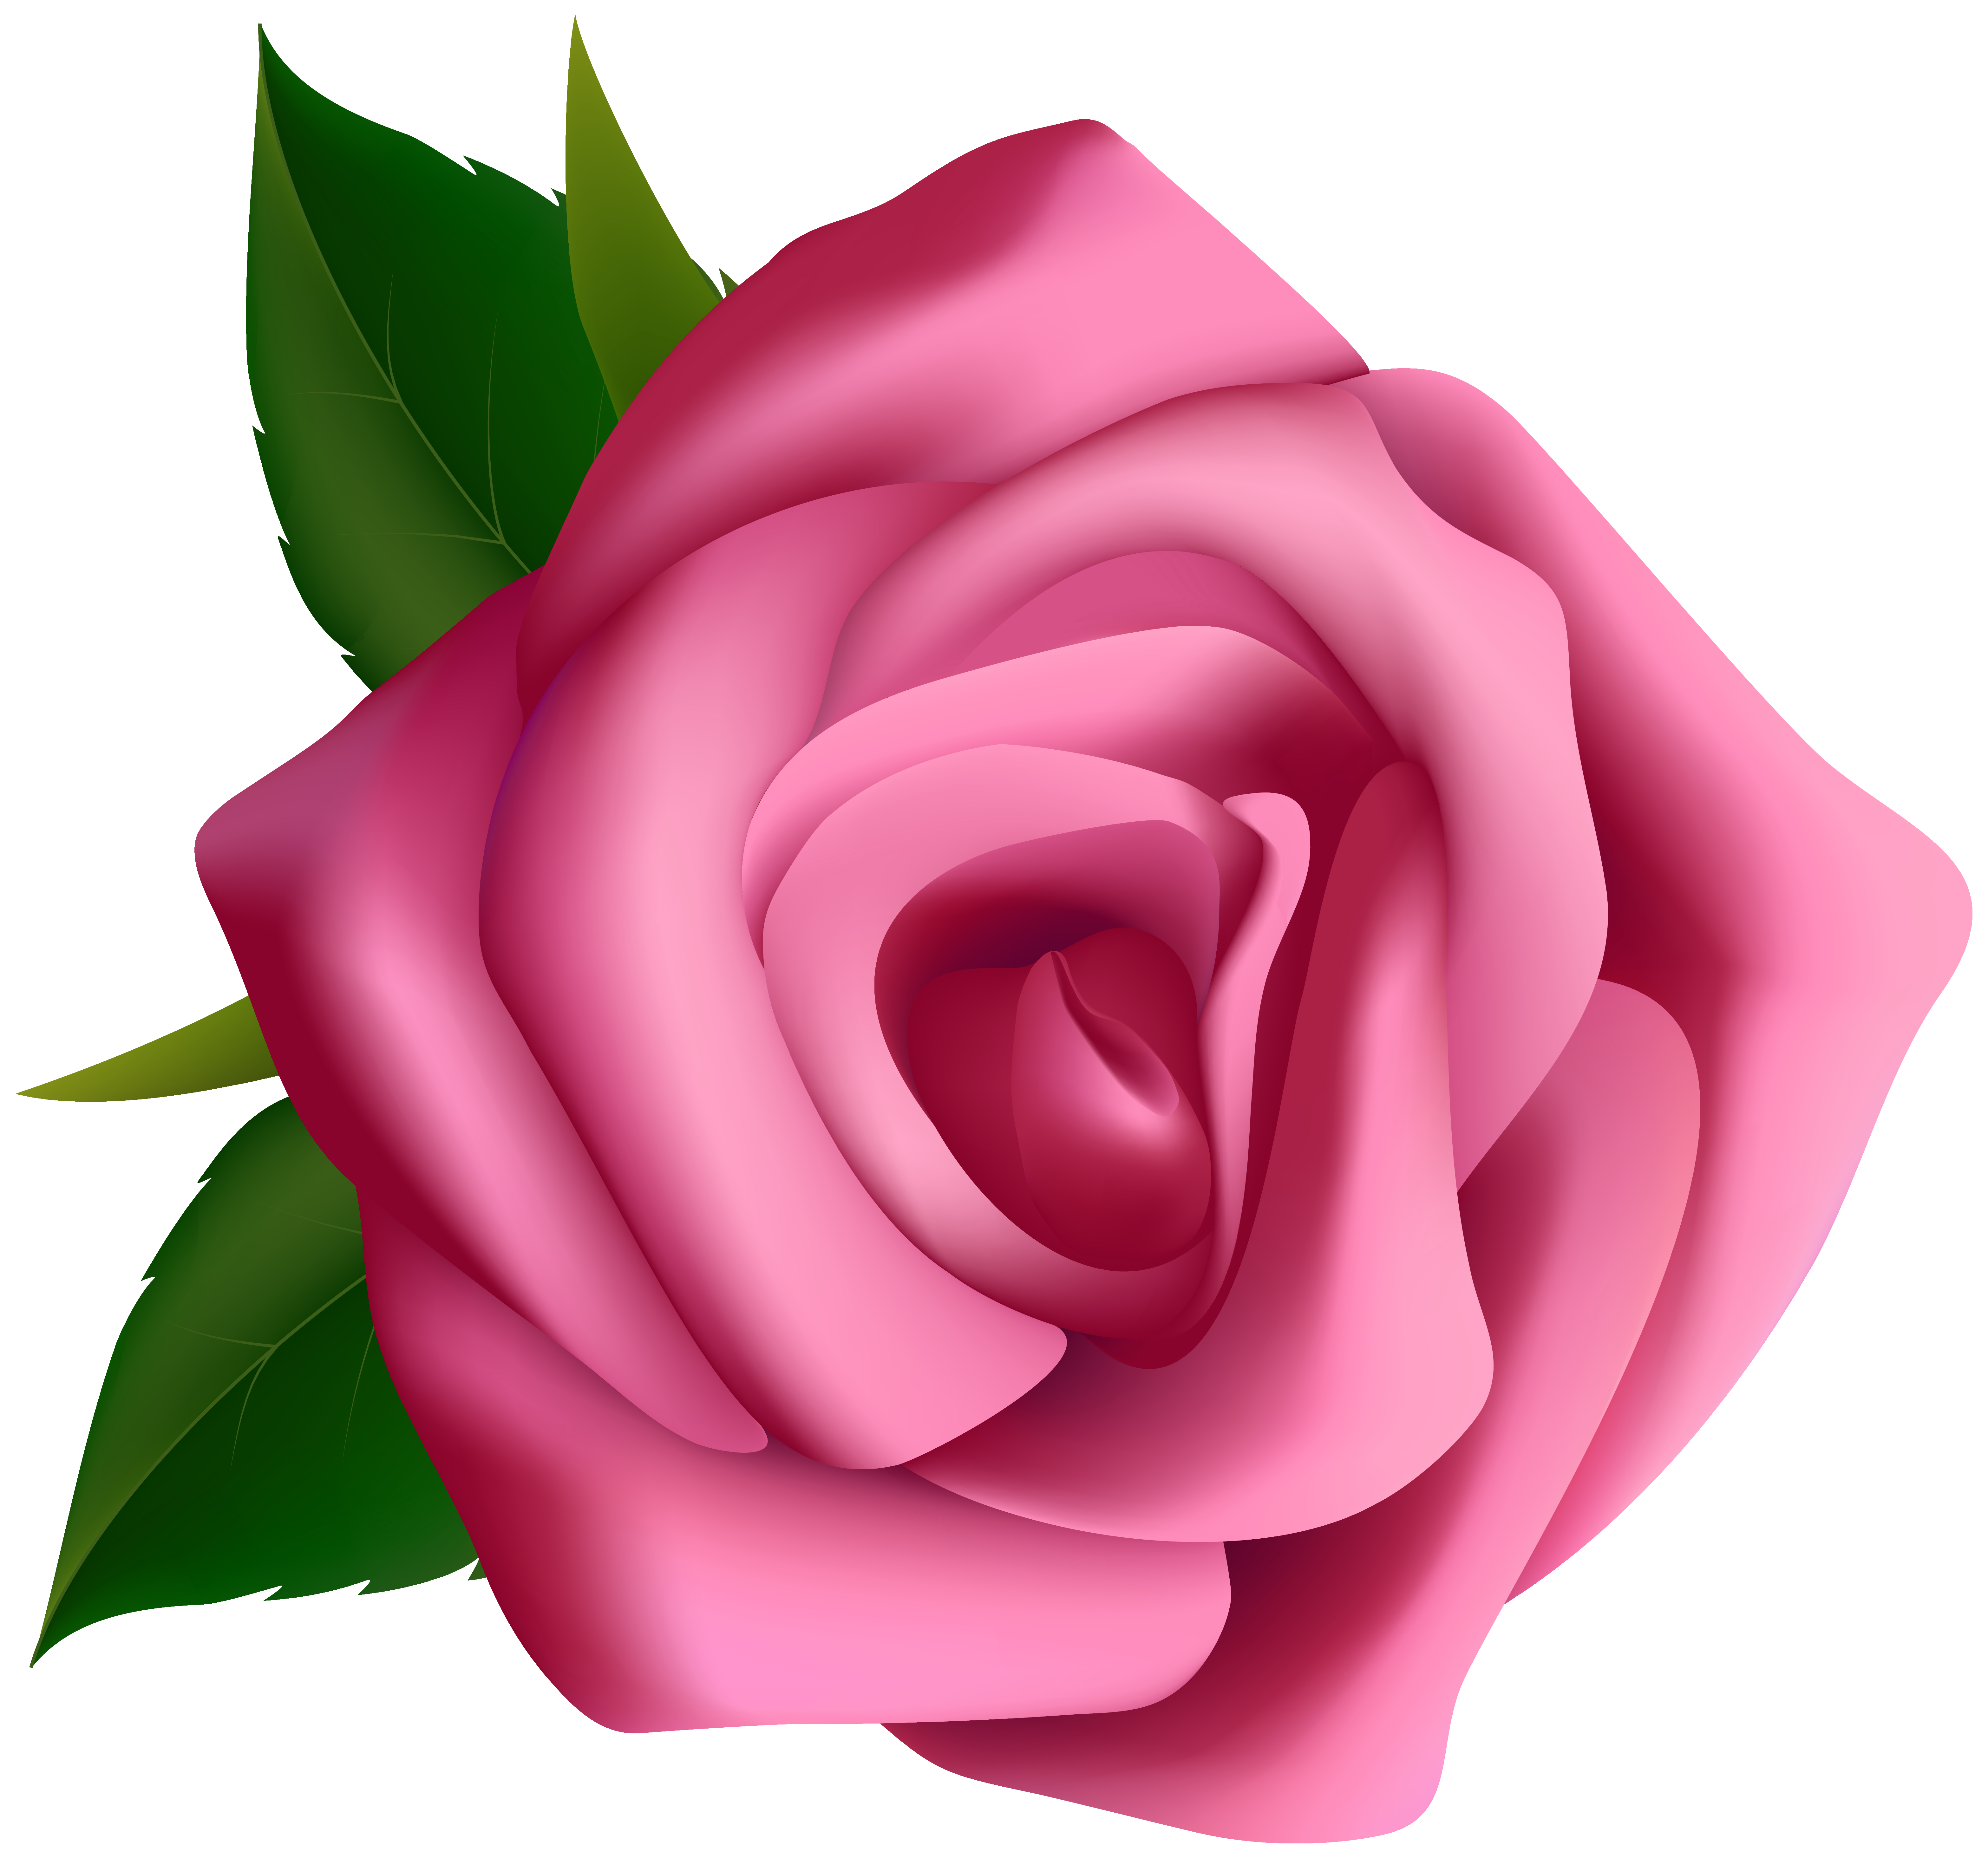 Petal clipart pink rose Rose High Quality Rose Gallery